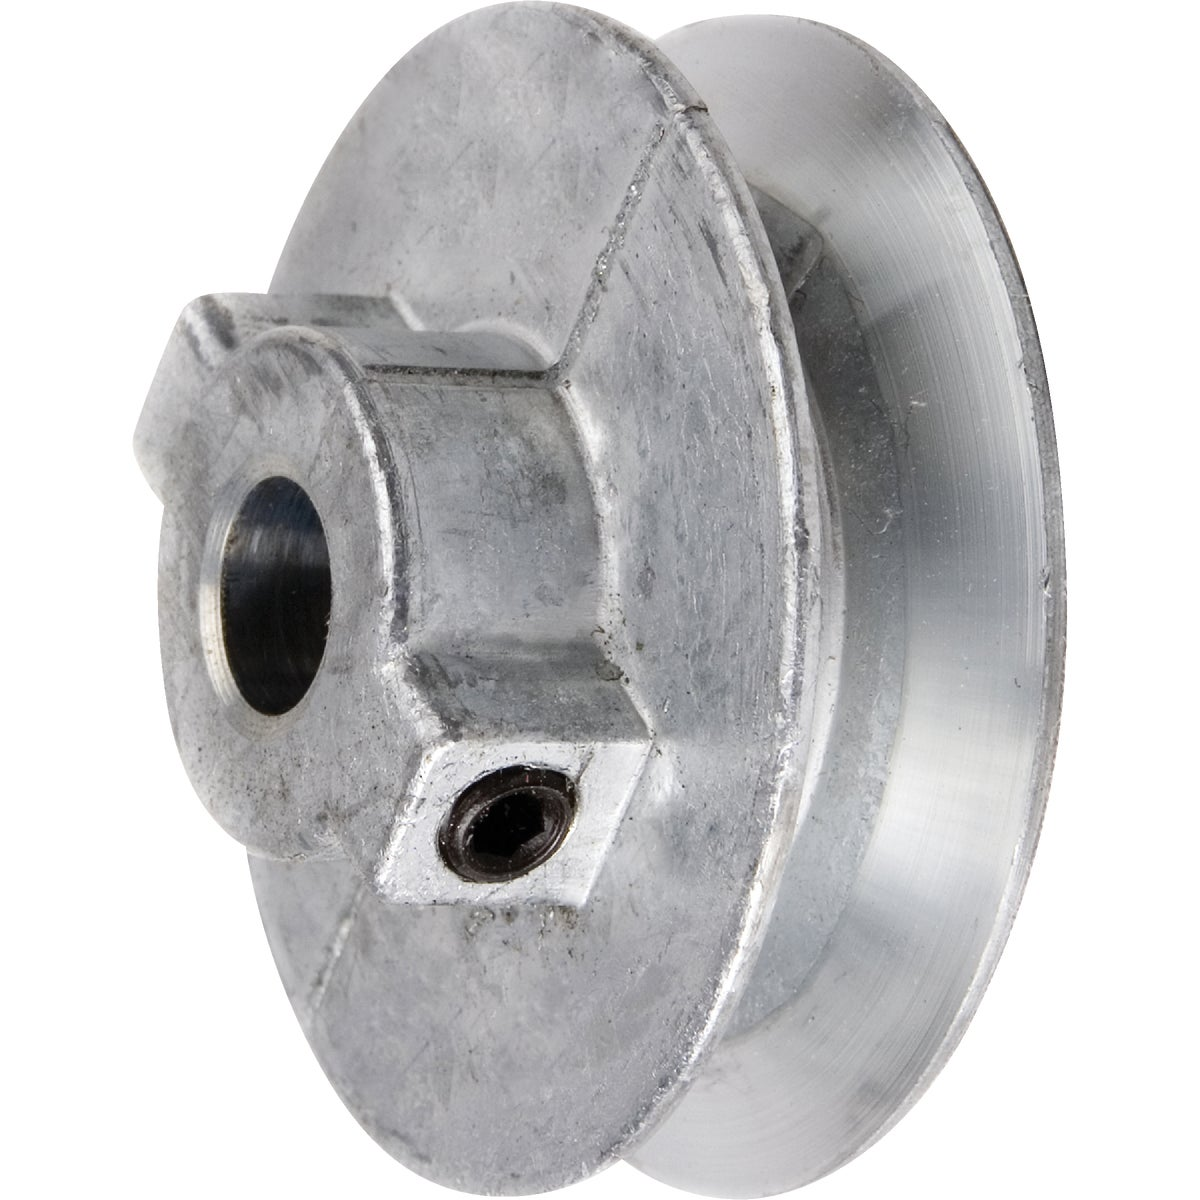 3X1/2 PULLEY - 300A5 by Chicago Die Casting